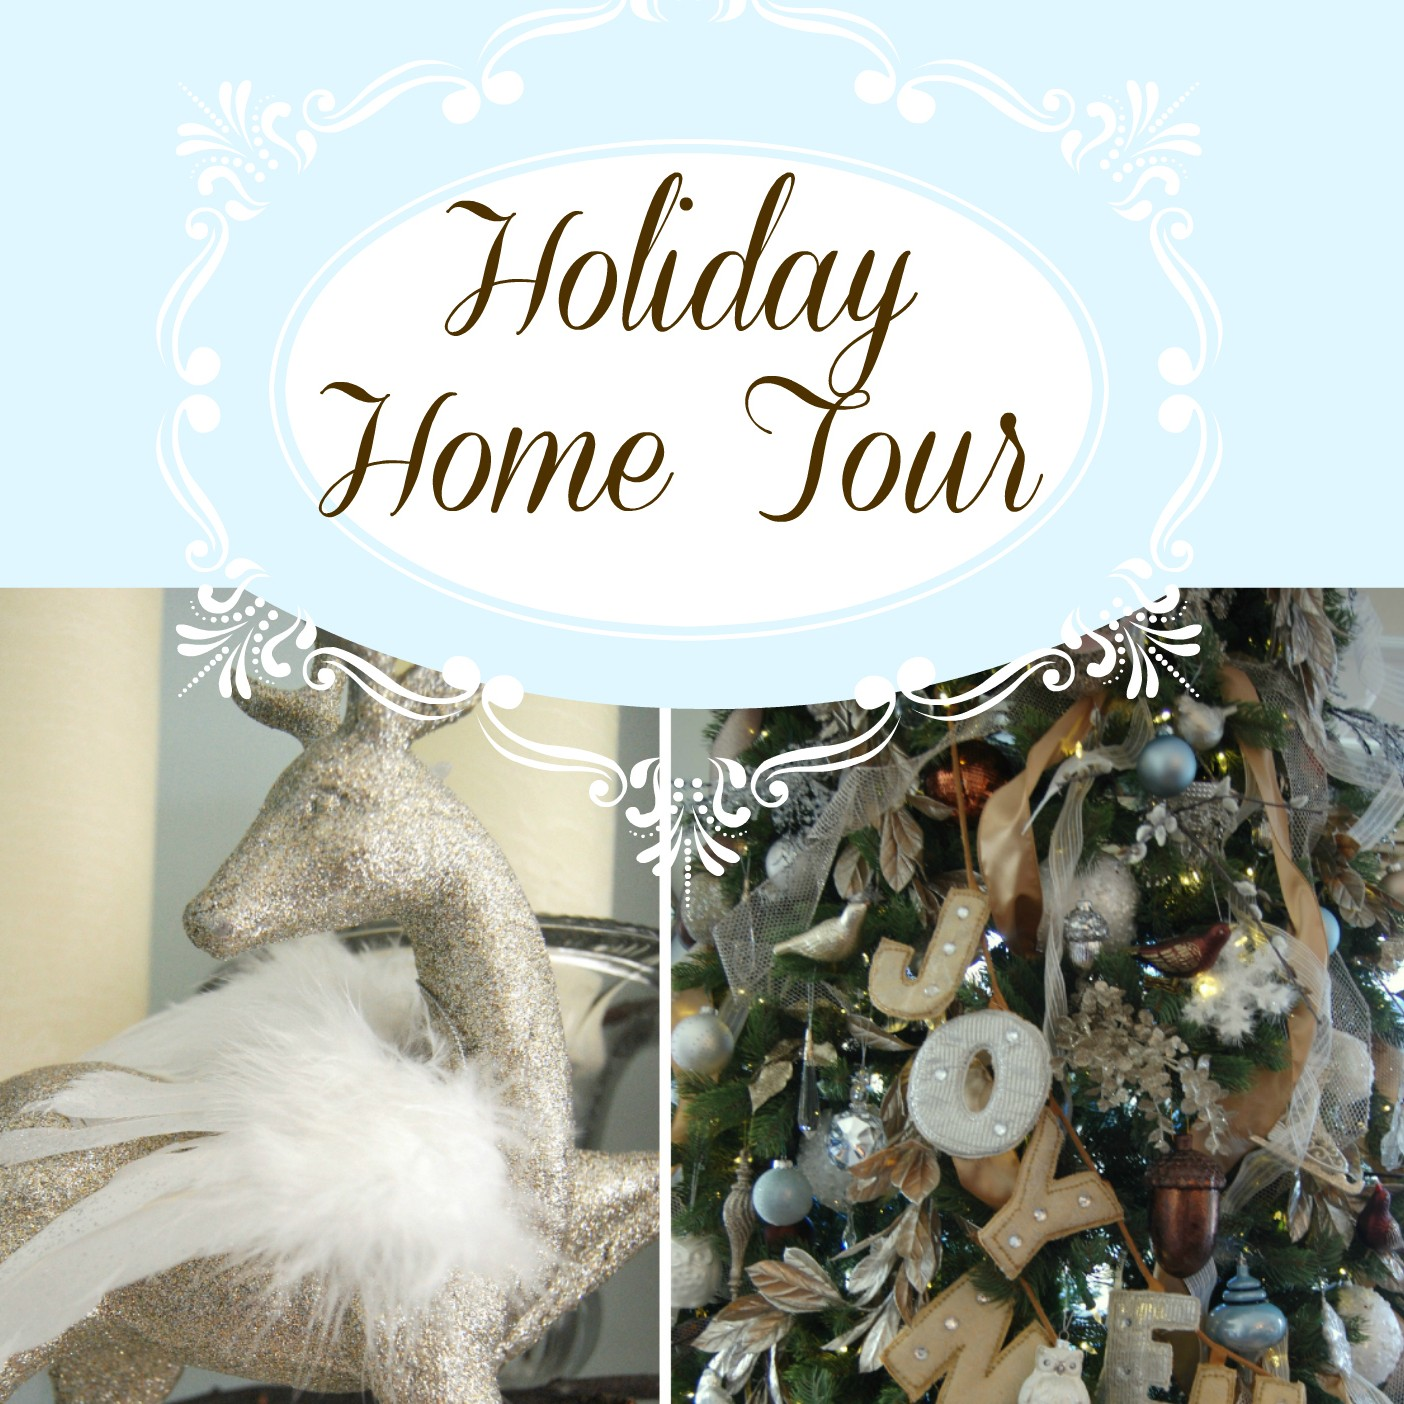 Holiday Home Tour 2012 Button